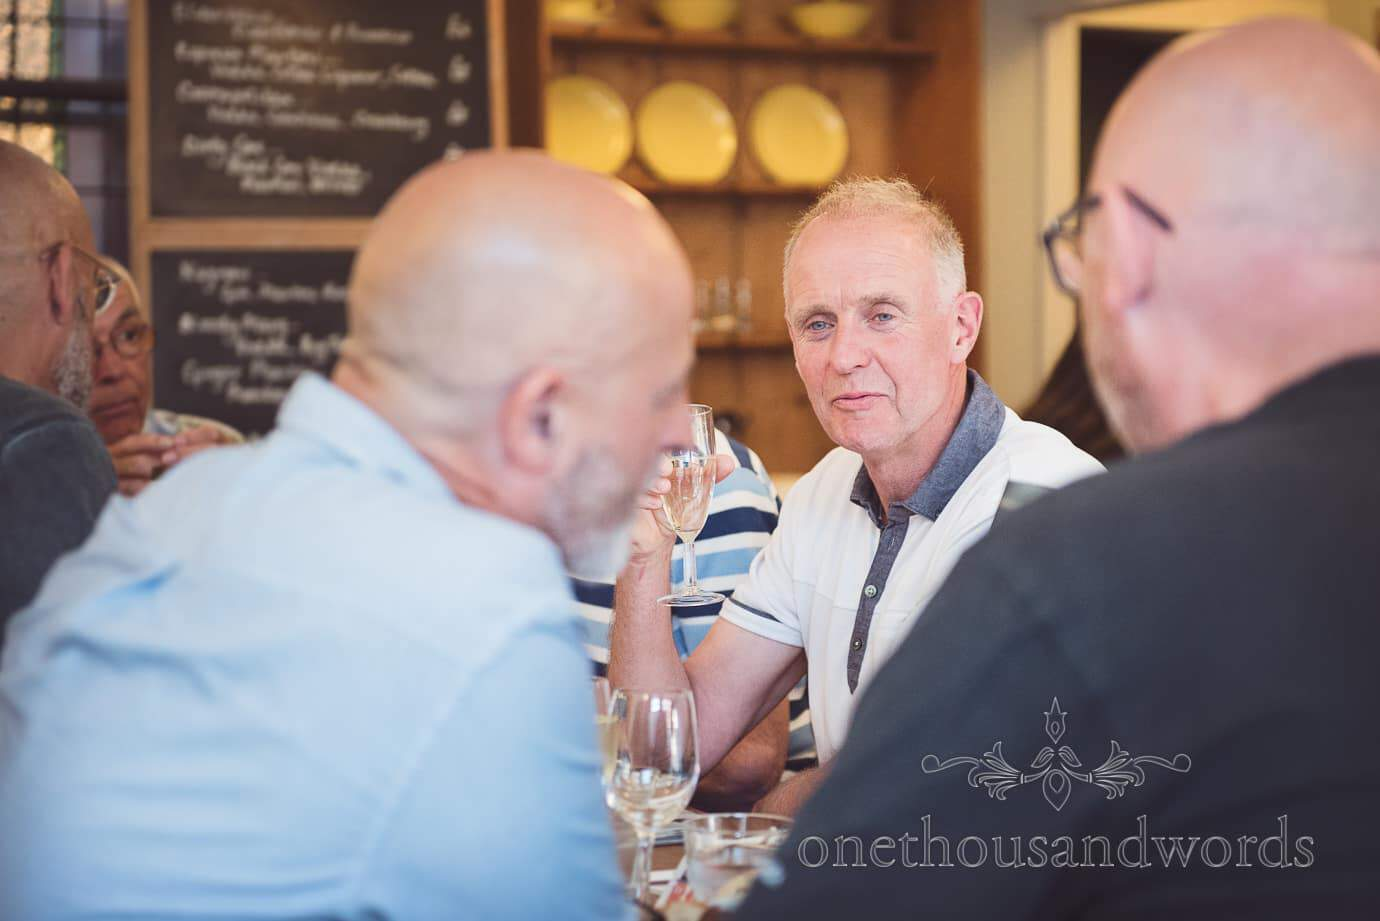 Father of the groom portrait photograph at pre-wedding meal in Swanage